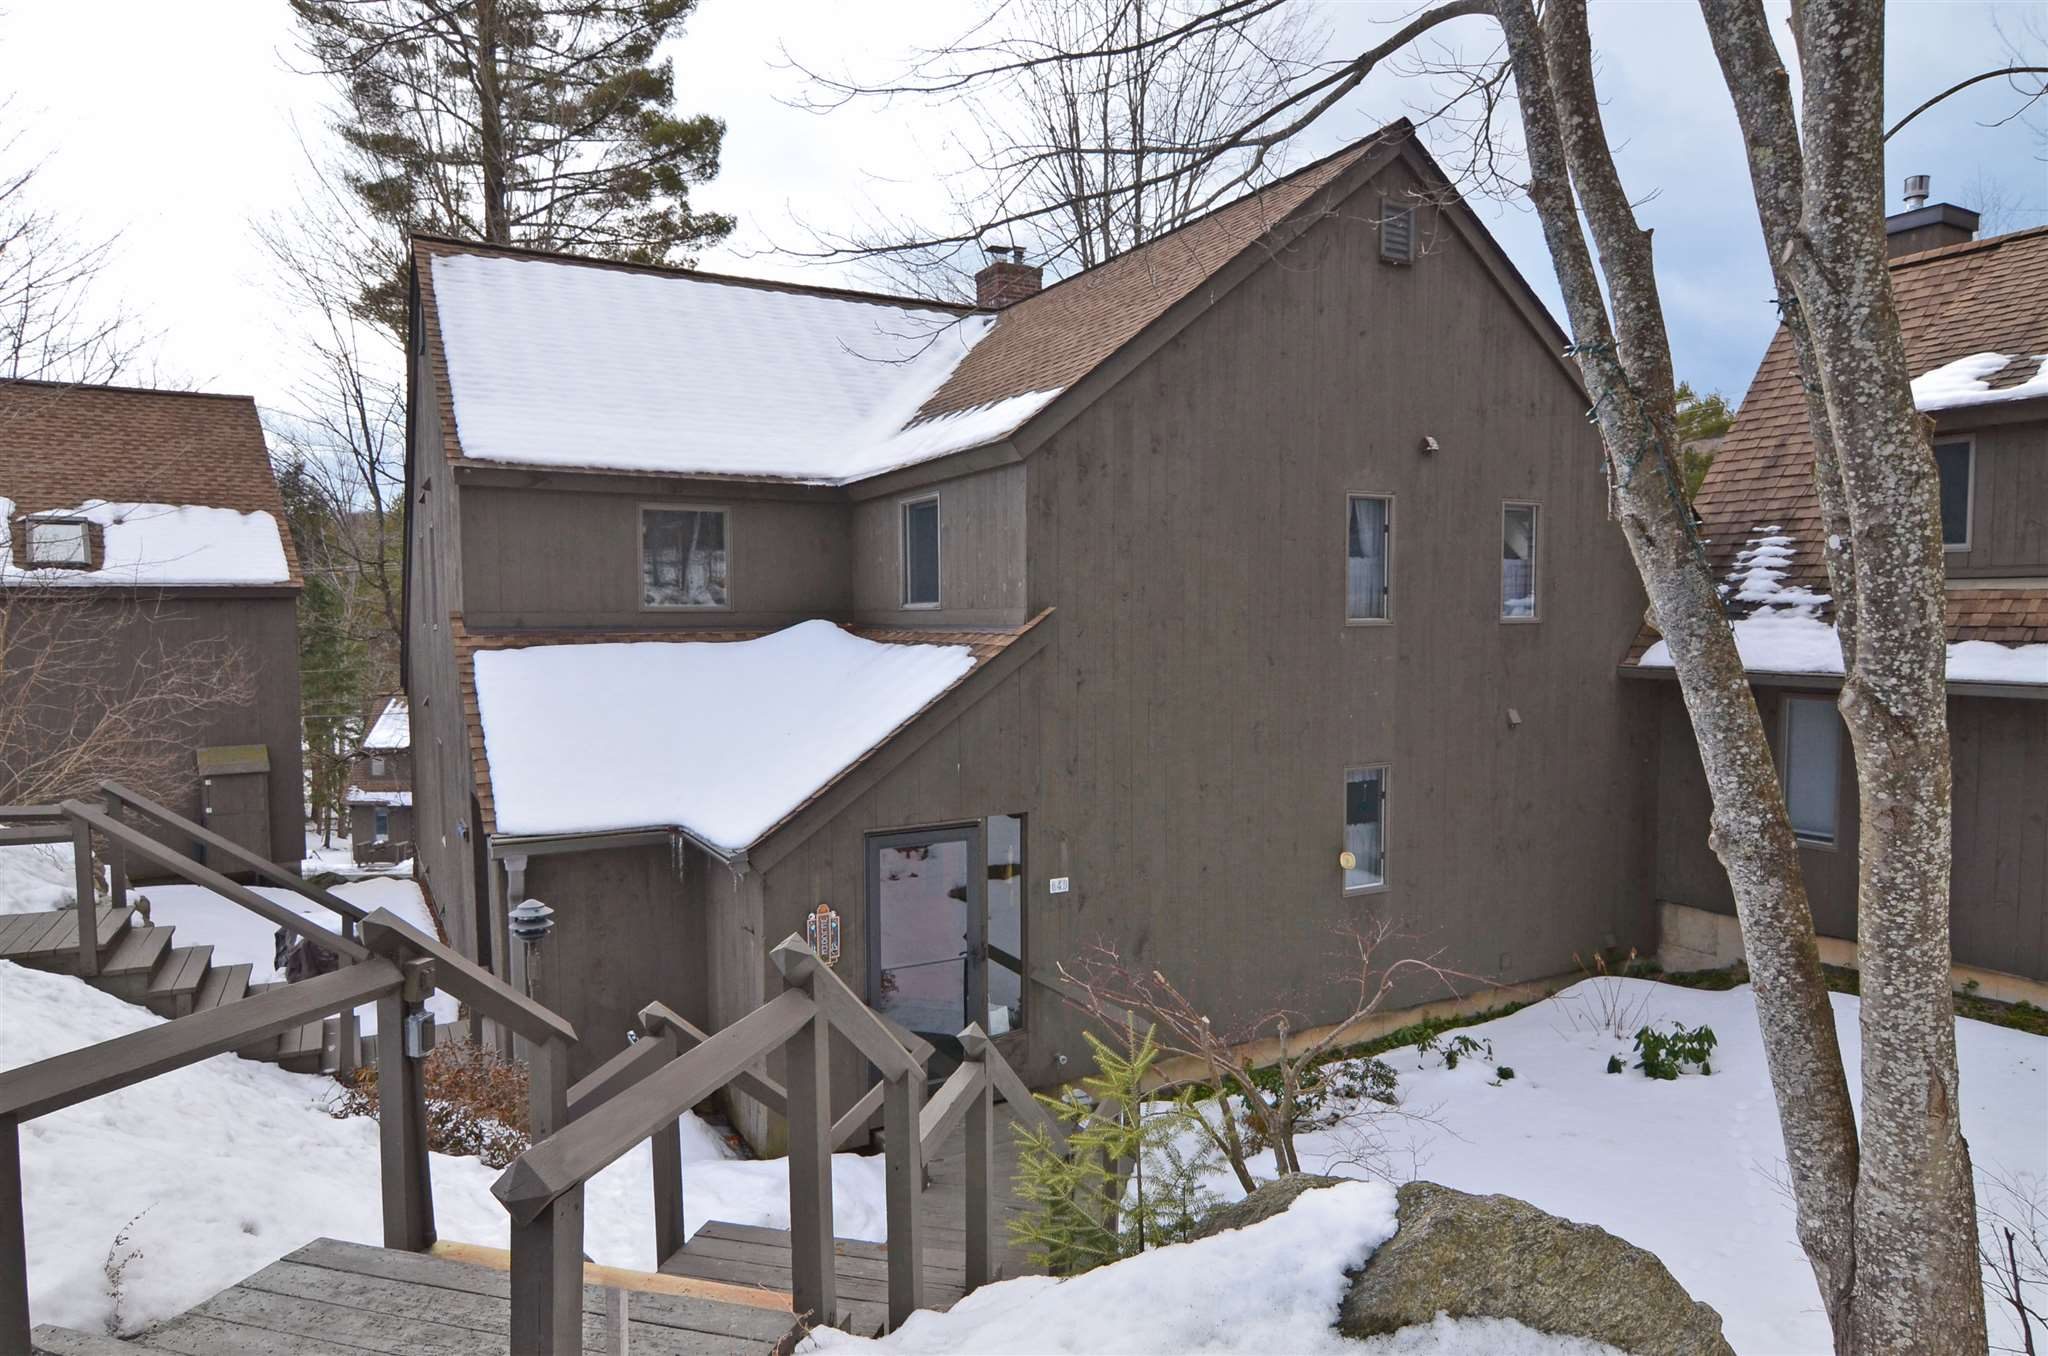 Village of Eastman in Town of Grantham NH  03753 Condo for sale $List Price is $175,000